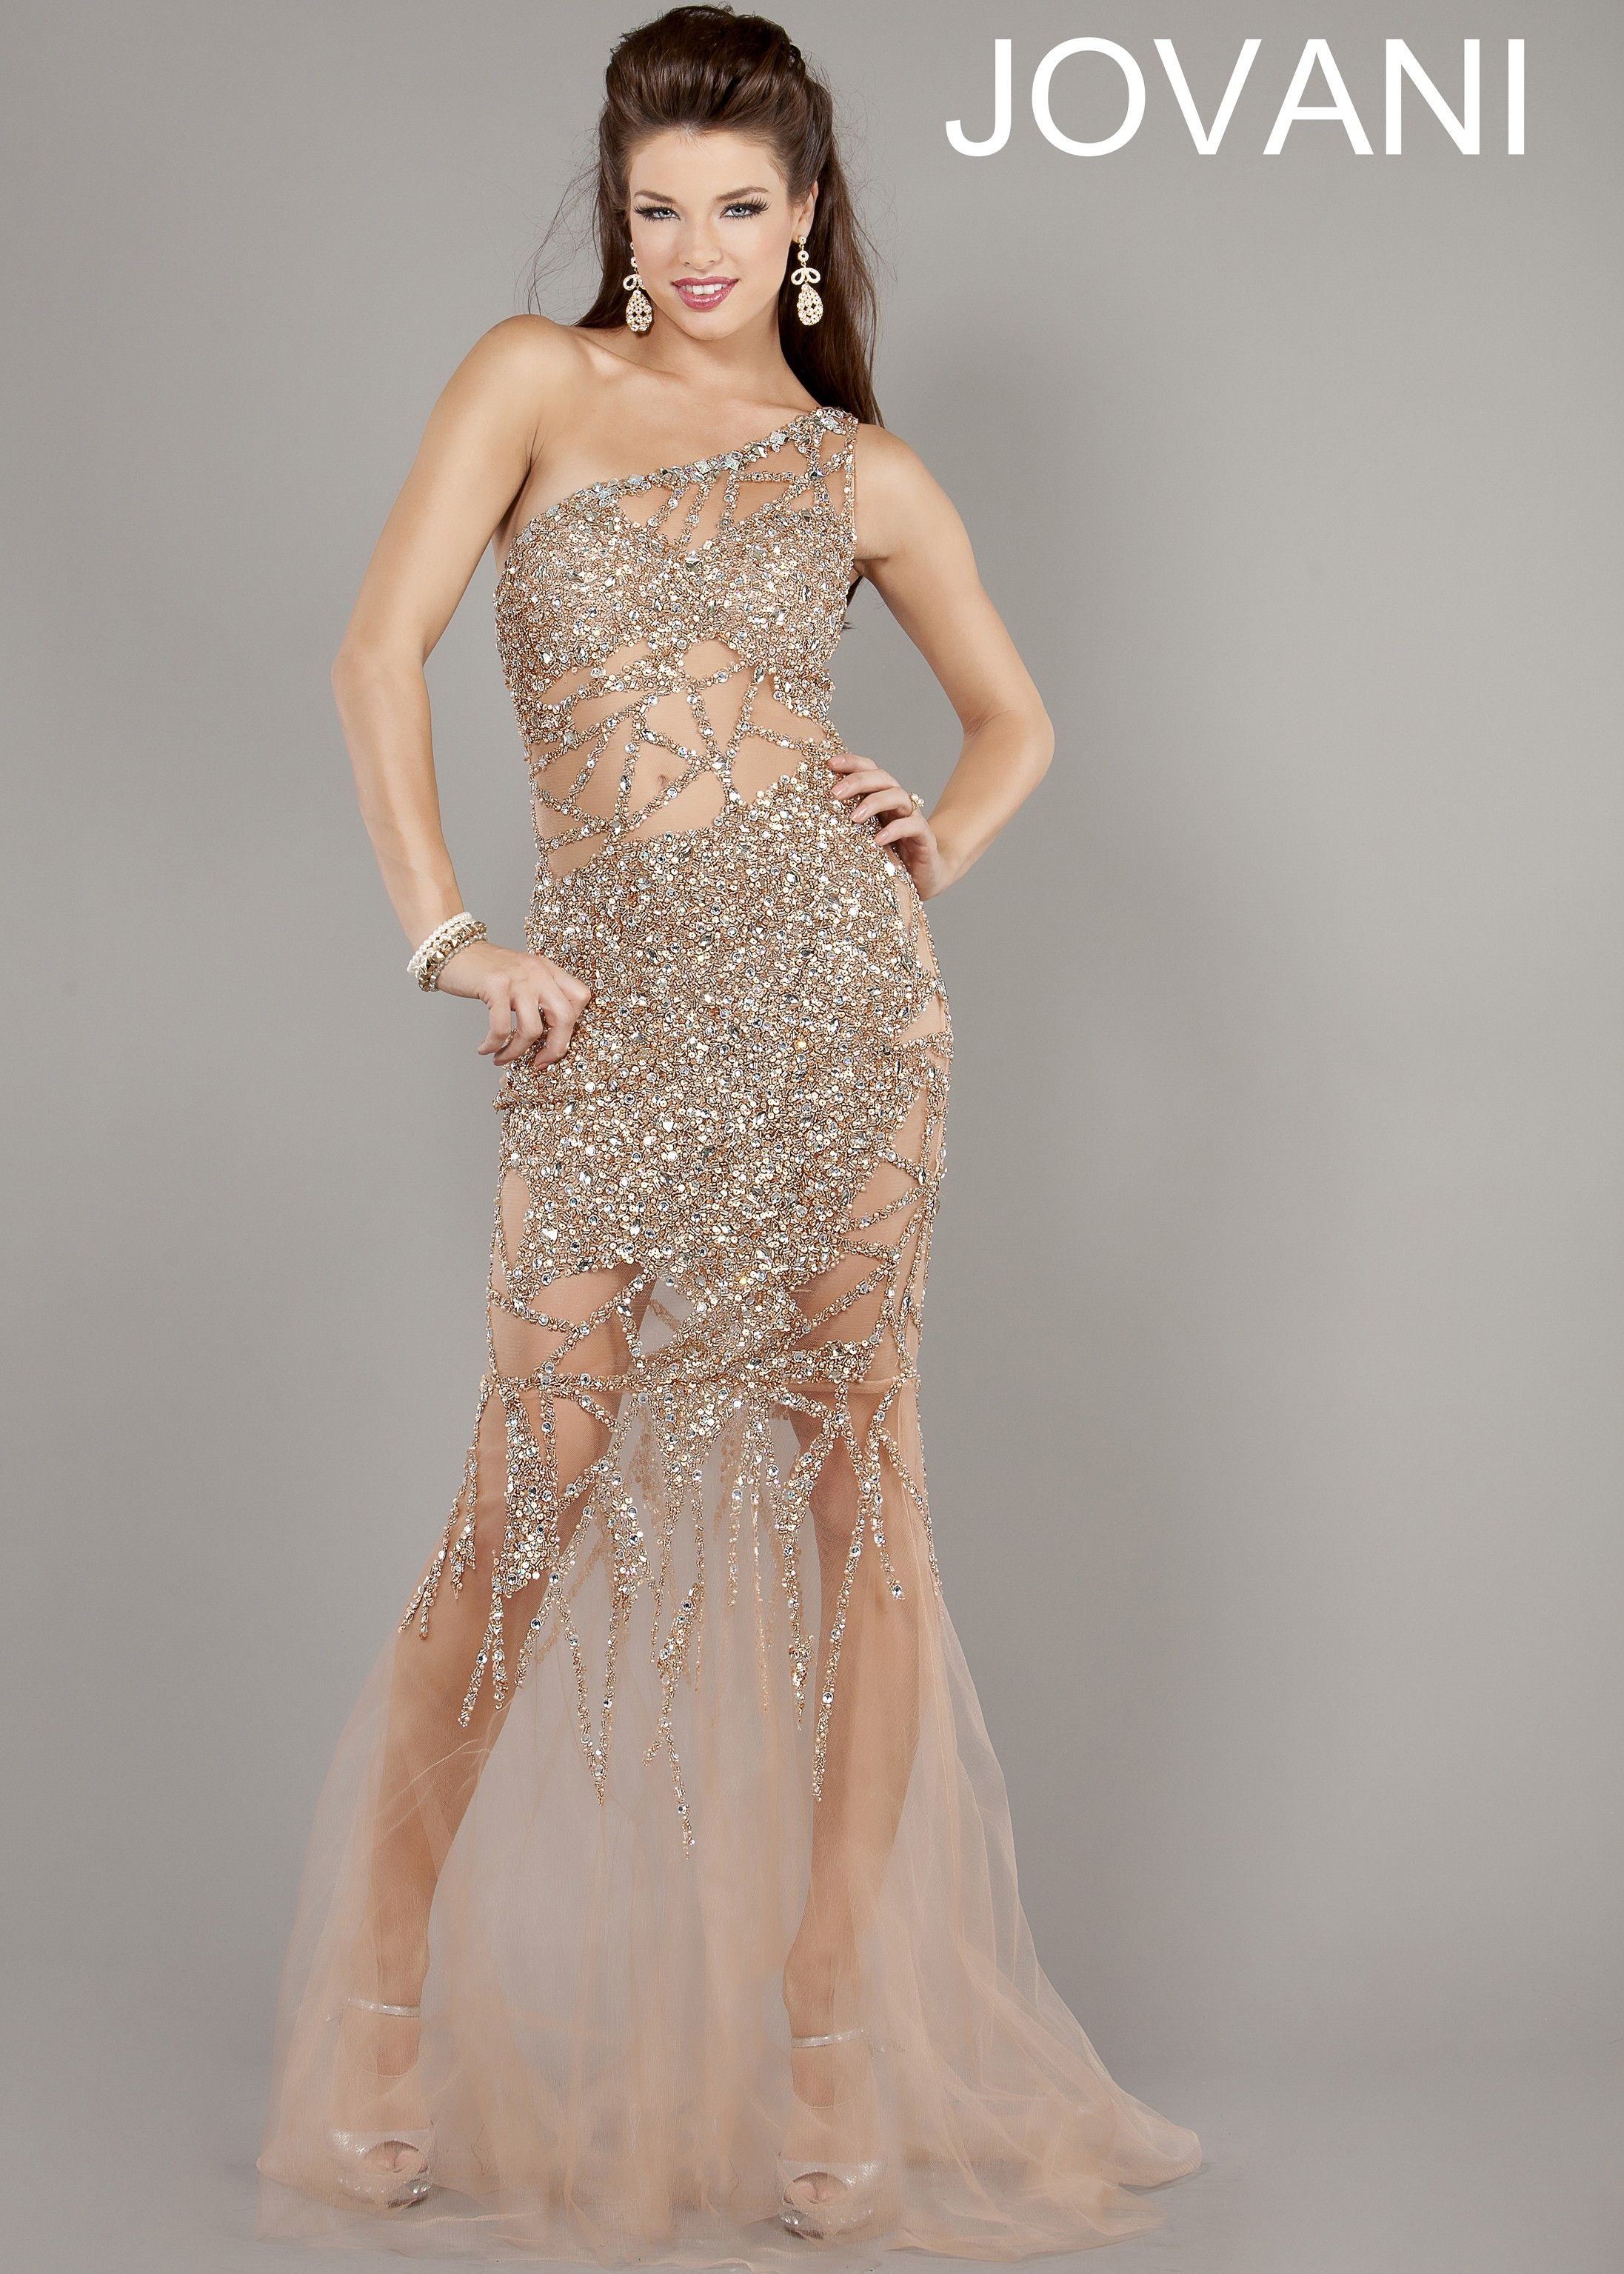 Jovani 6395 Sheer Nude Gown 2013 Prom Collection Prom